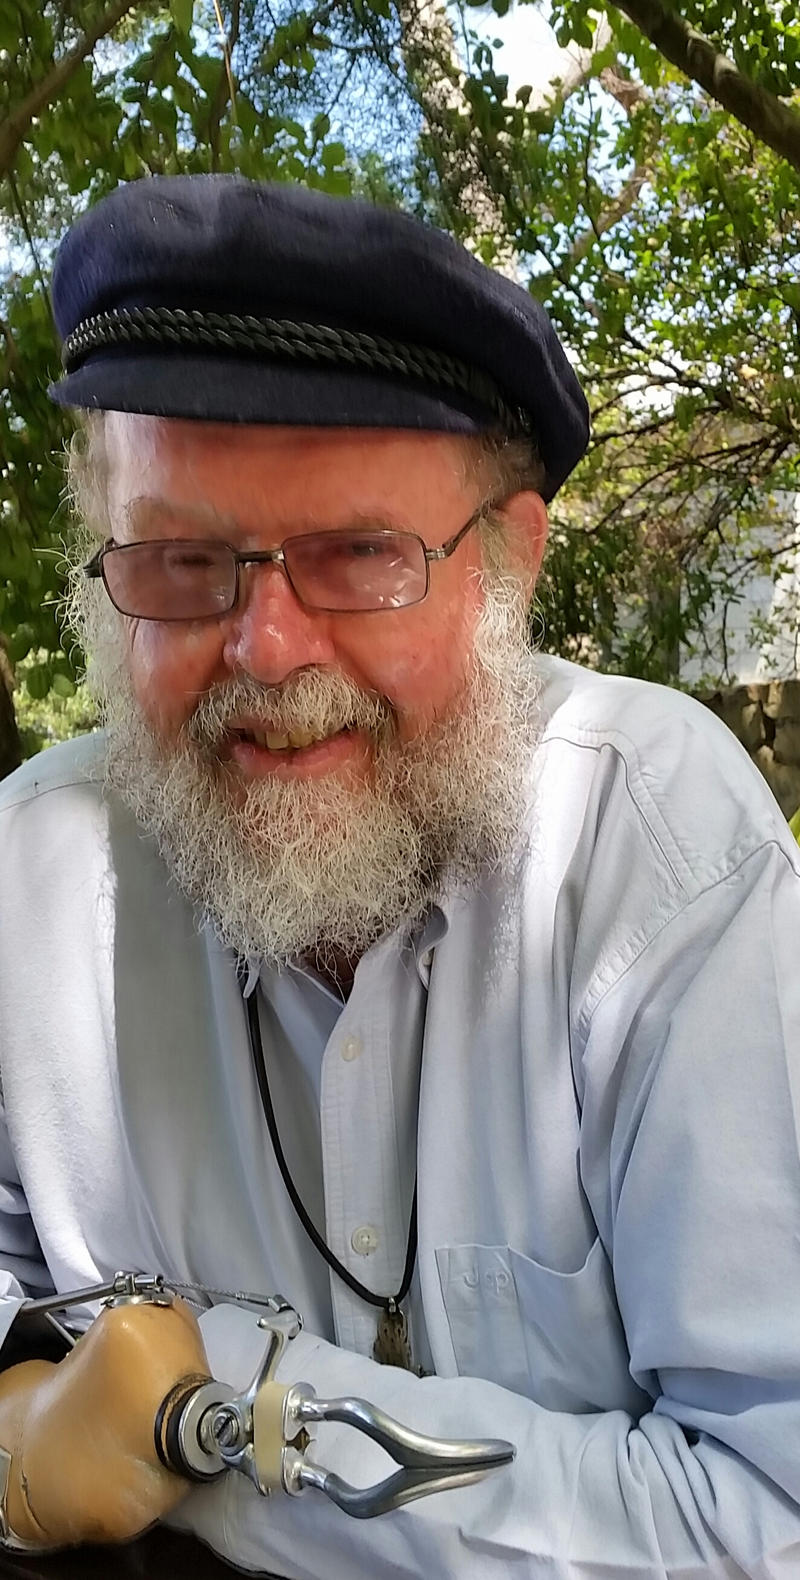 Father Michael Lapsley is a South African liberation activist and priest.